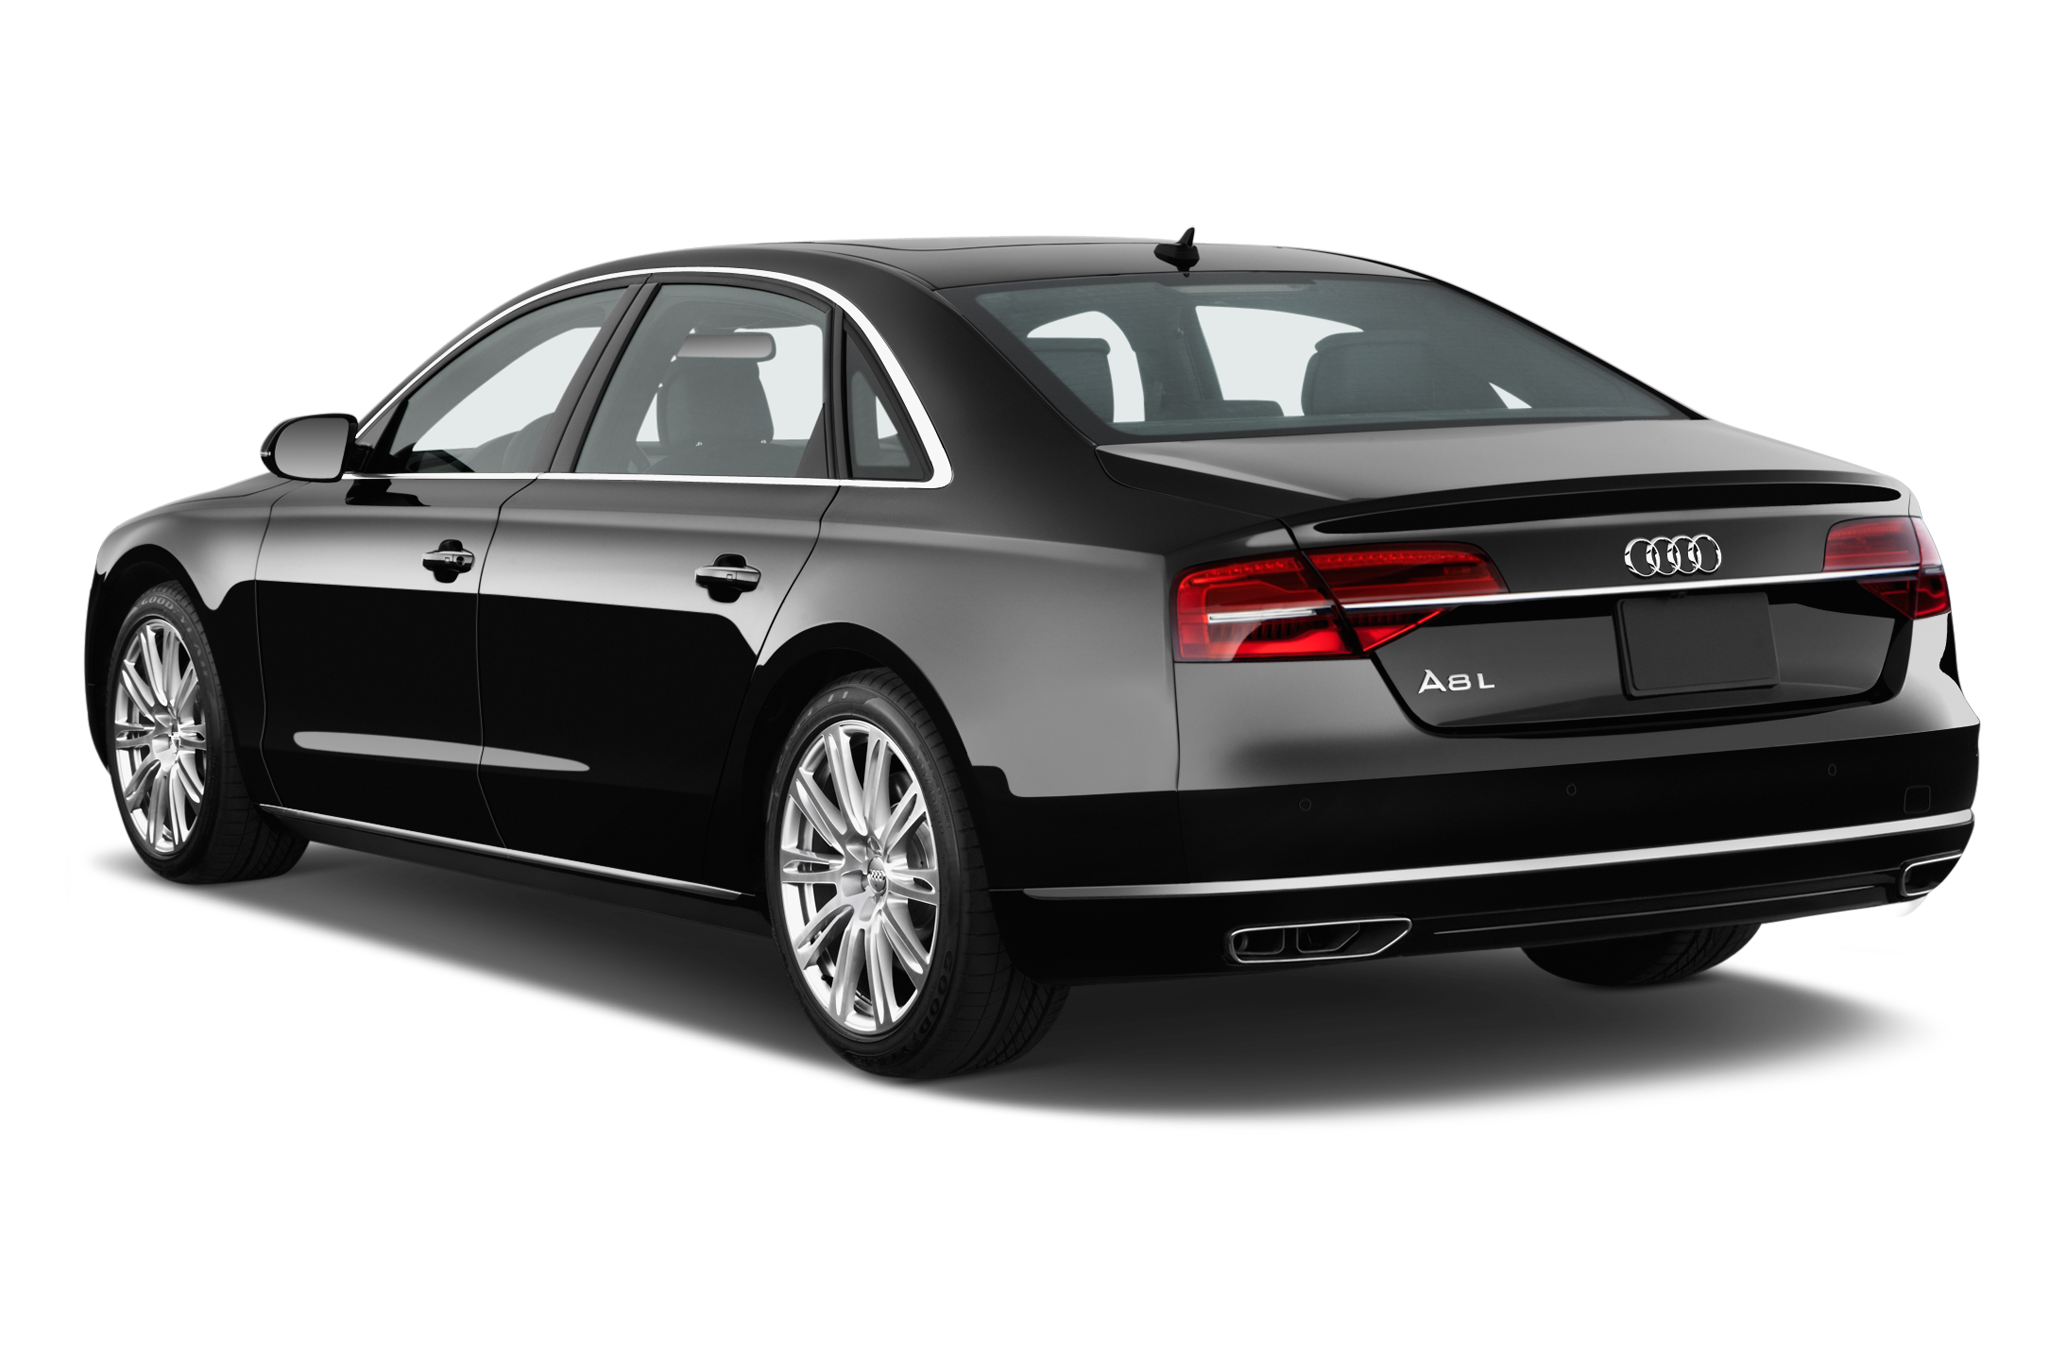 2016 Audi A8 L Gains 4.0T Sport Model with Extra Power ...